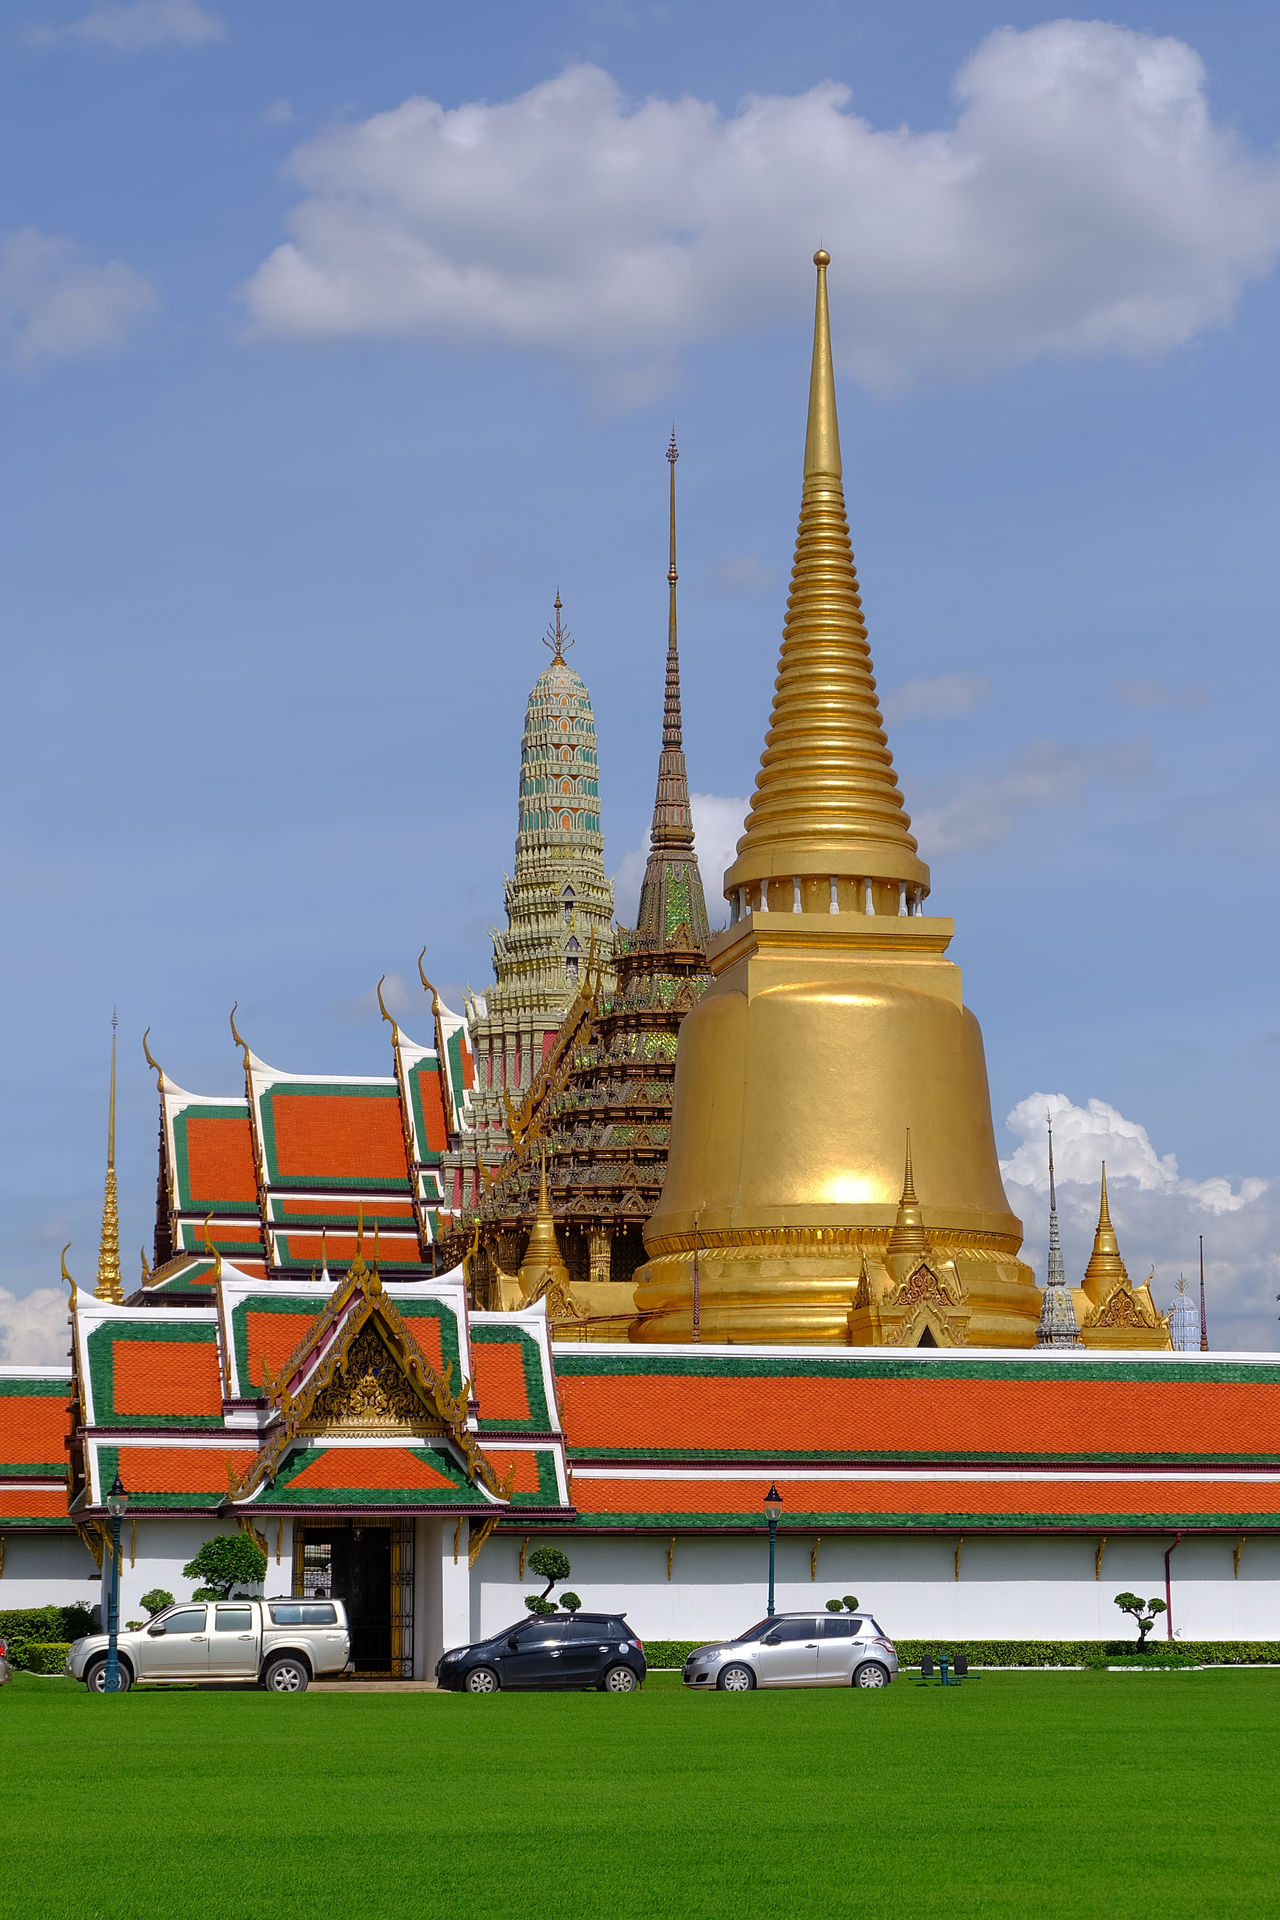 Wat Phra Kaeo temple , landmark of Thailand Ancient Architecture Art Blue Blue Sky Bluesky Building Cloud Grass Green Greensward History Landmark Landscape Old Pagoda Religion Royal Royal Palace Sky Temple Thai Architecture Thai Art Tree Wat Phra Kaeo